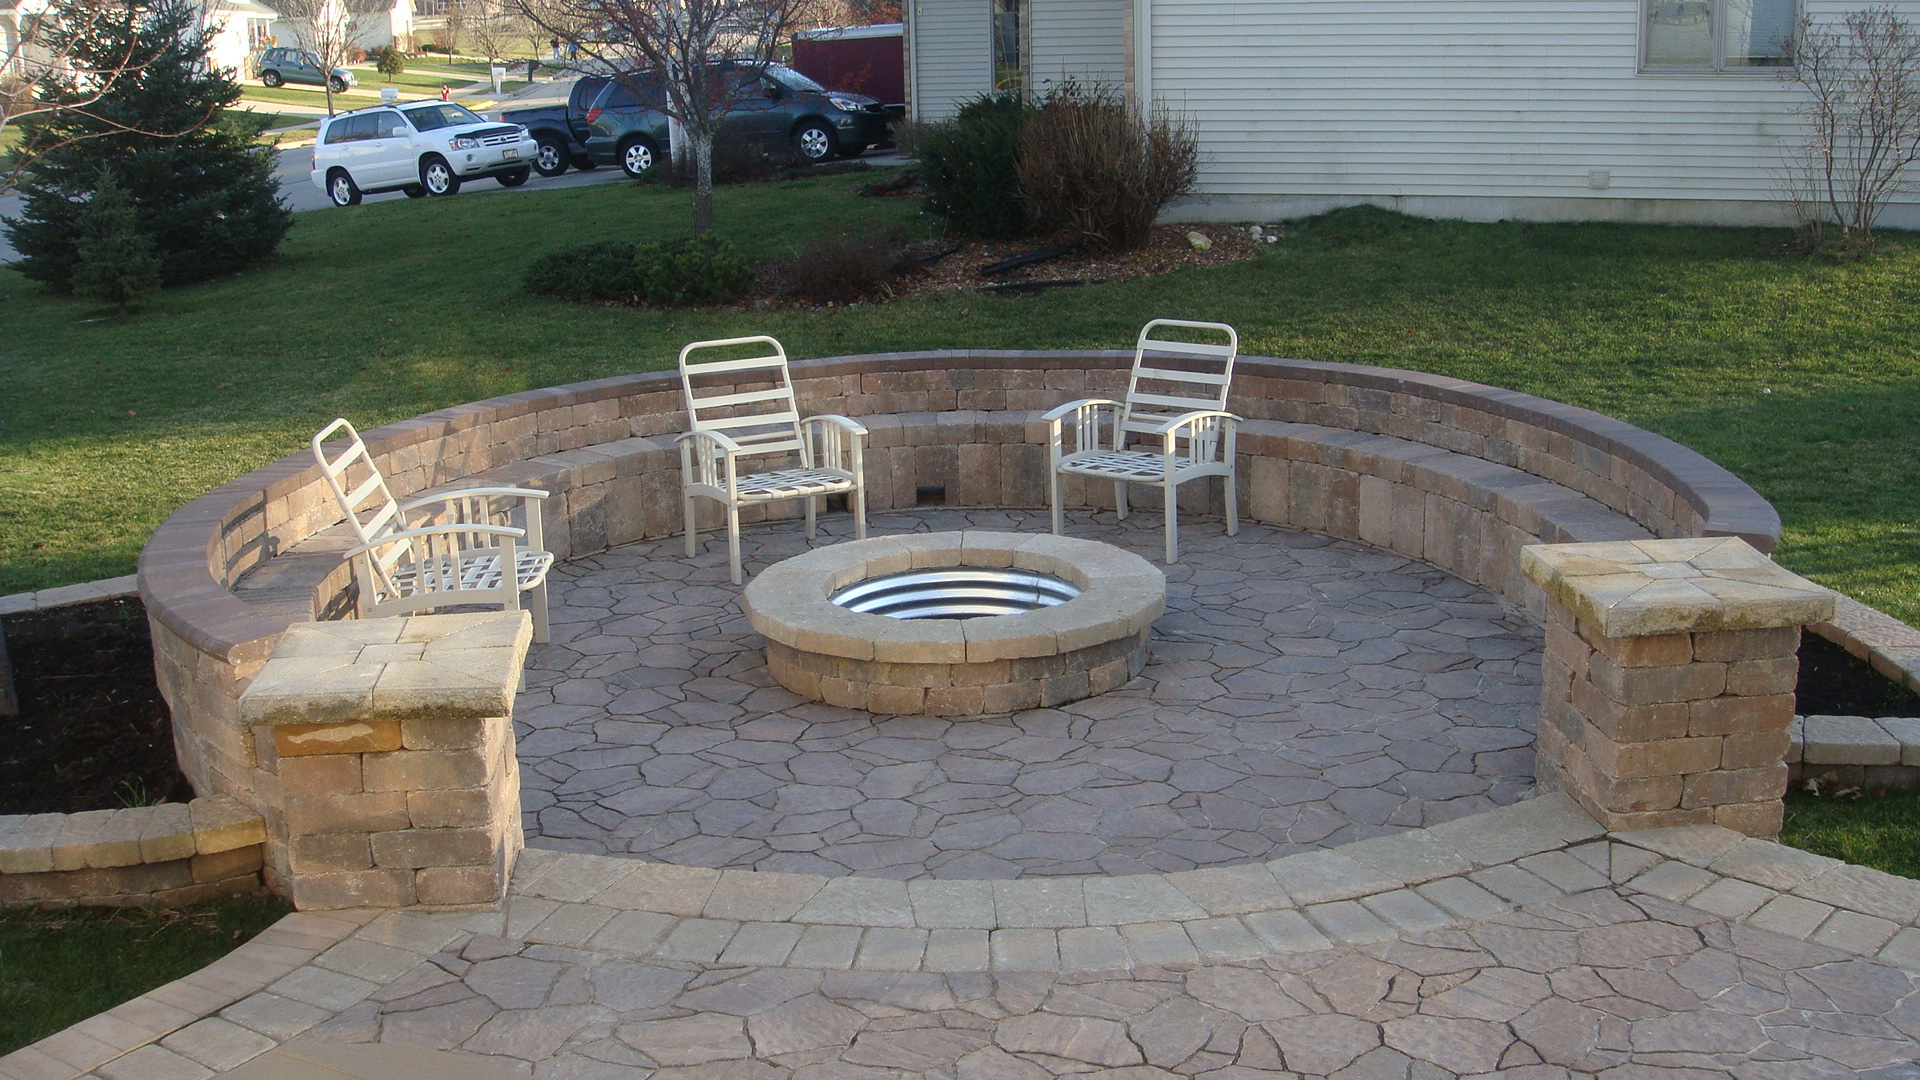 Patio Pavers | Patio Paver Ideas | Madison WI | Marvins ... on Paver Patio Designs With Fire Pit id=85708